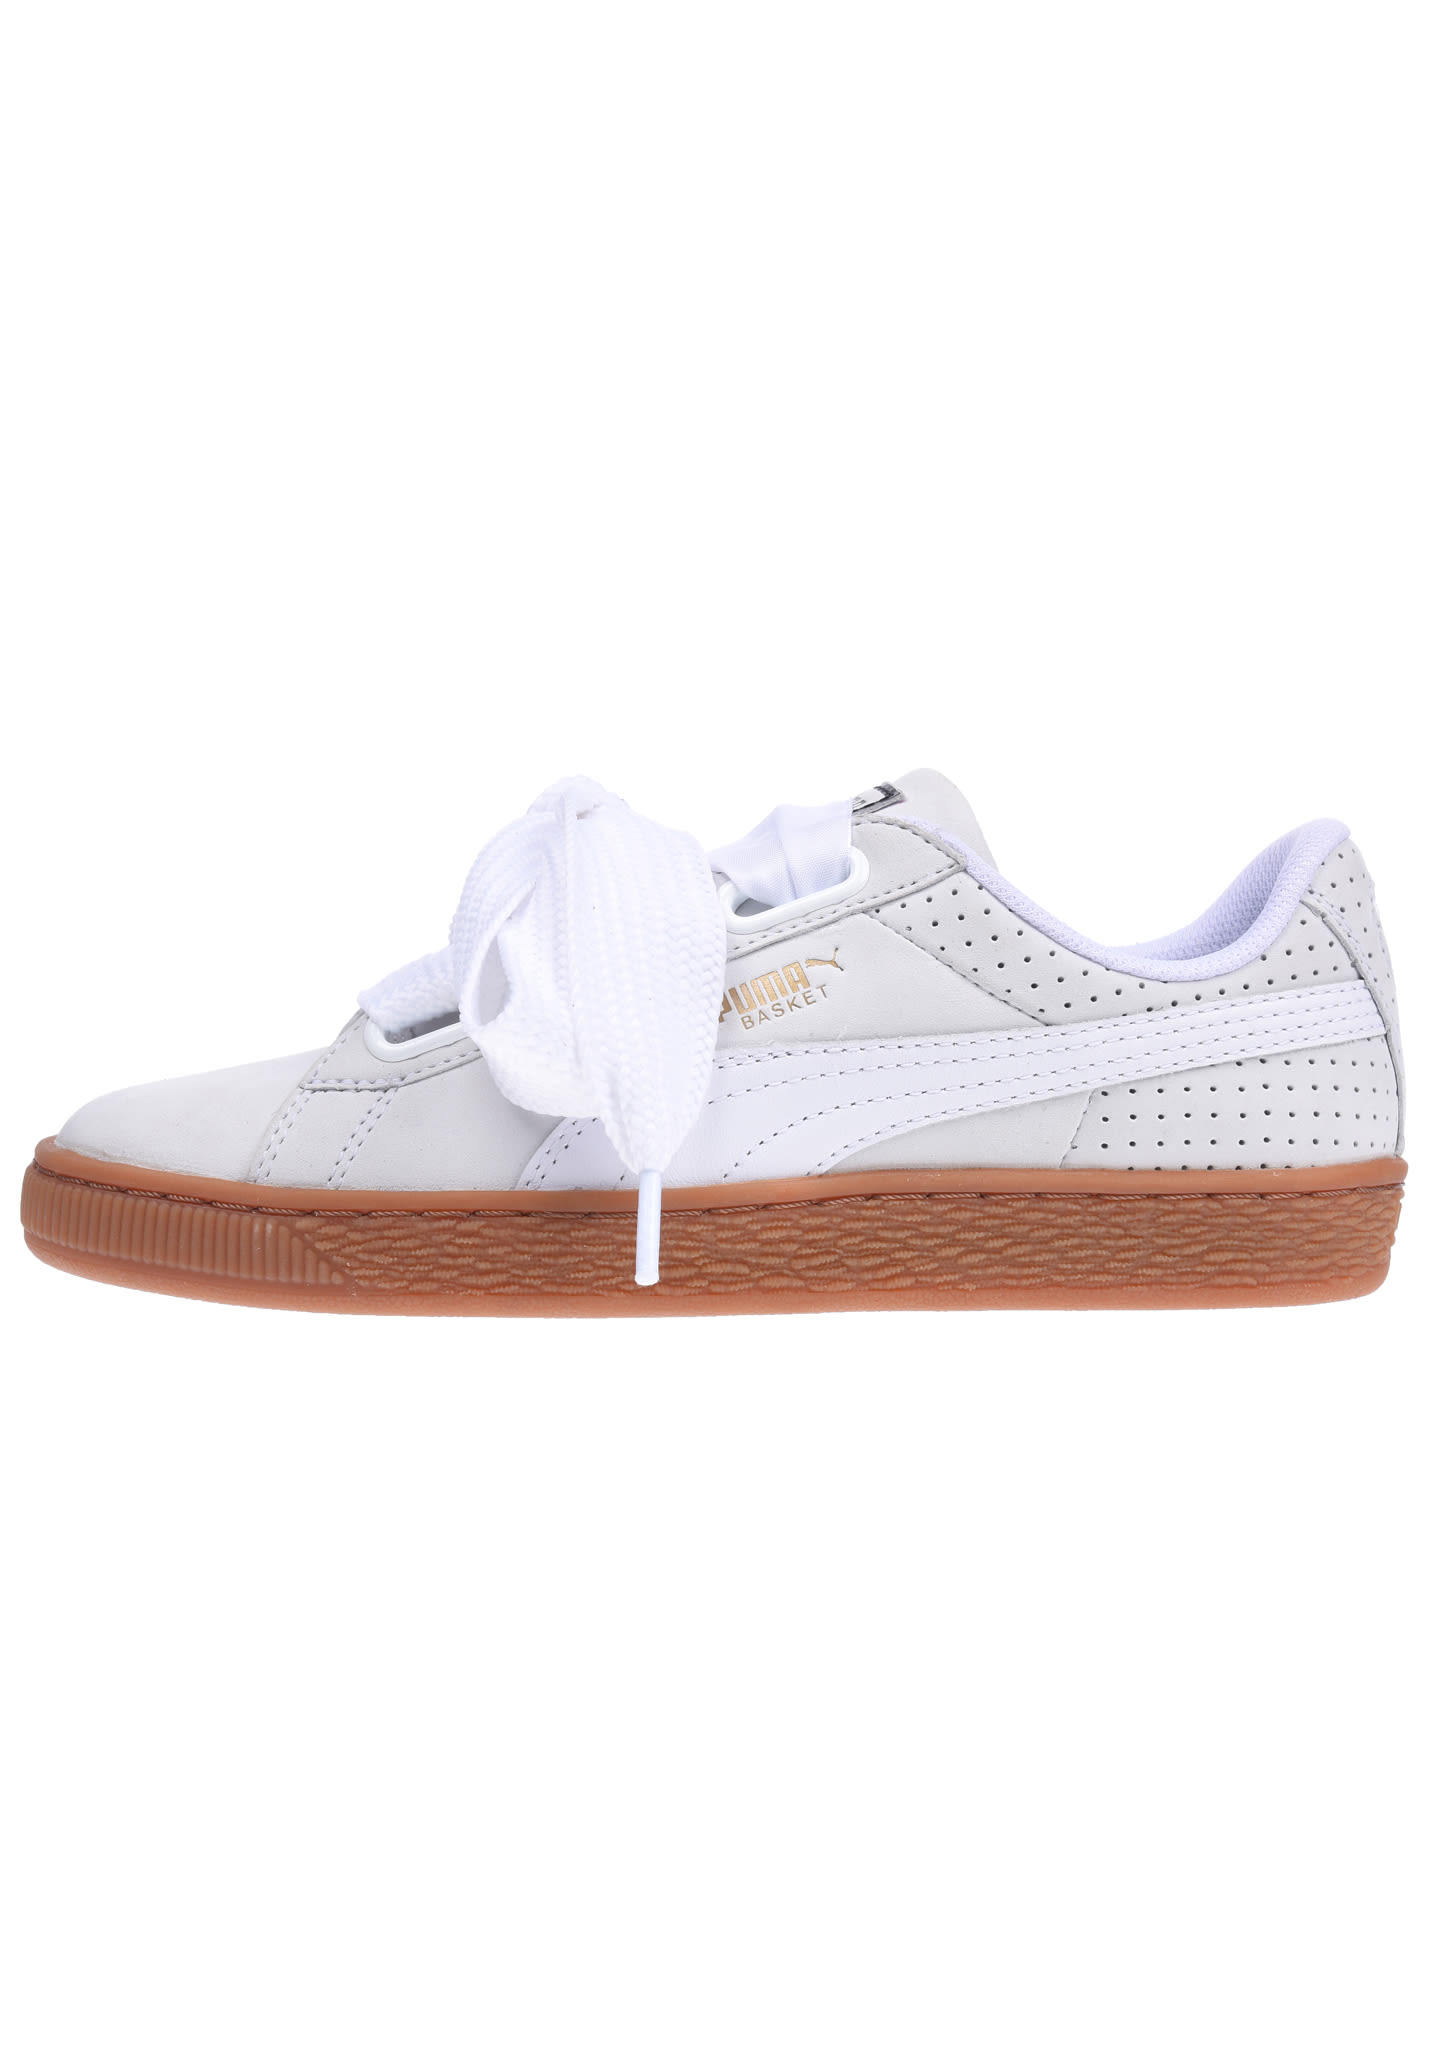 Puma Basket Heart Perf Gum - Sneakers for Women - White - Planet Sports 520adc229